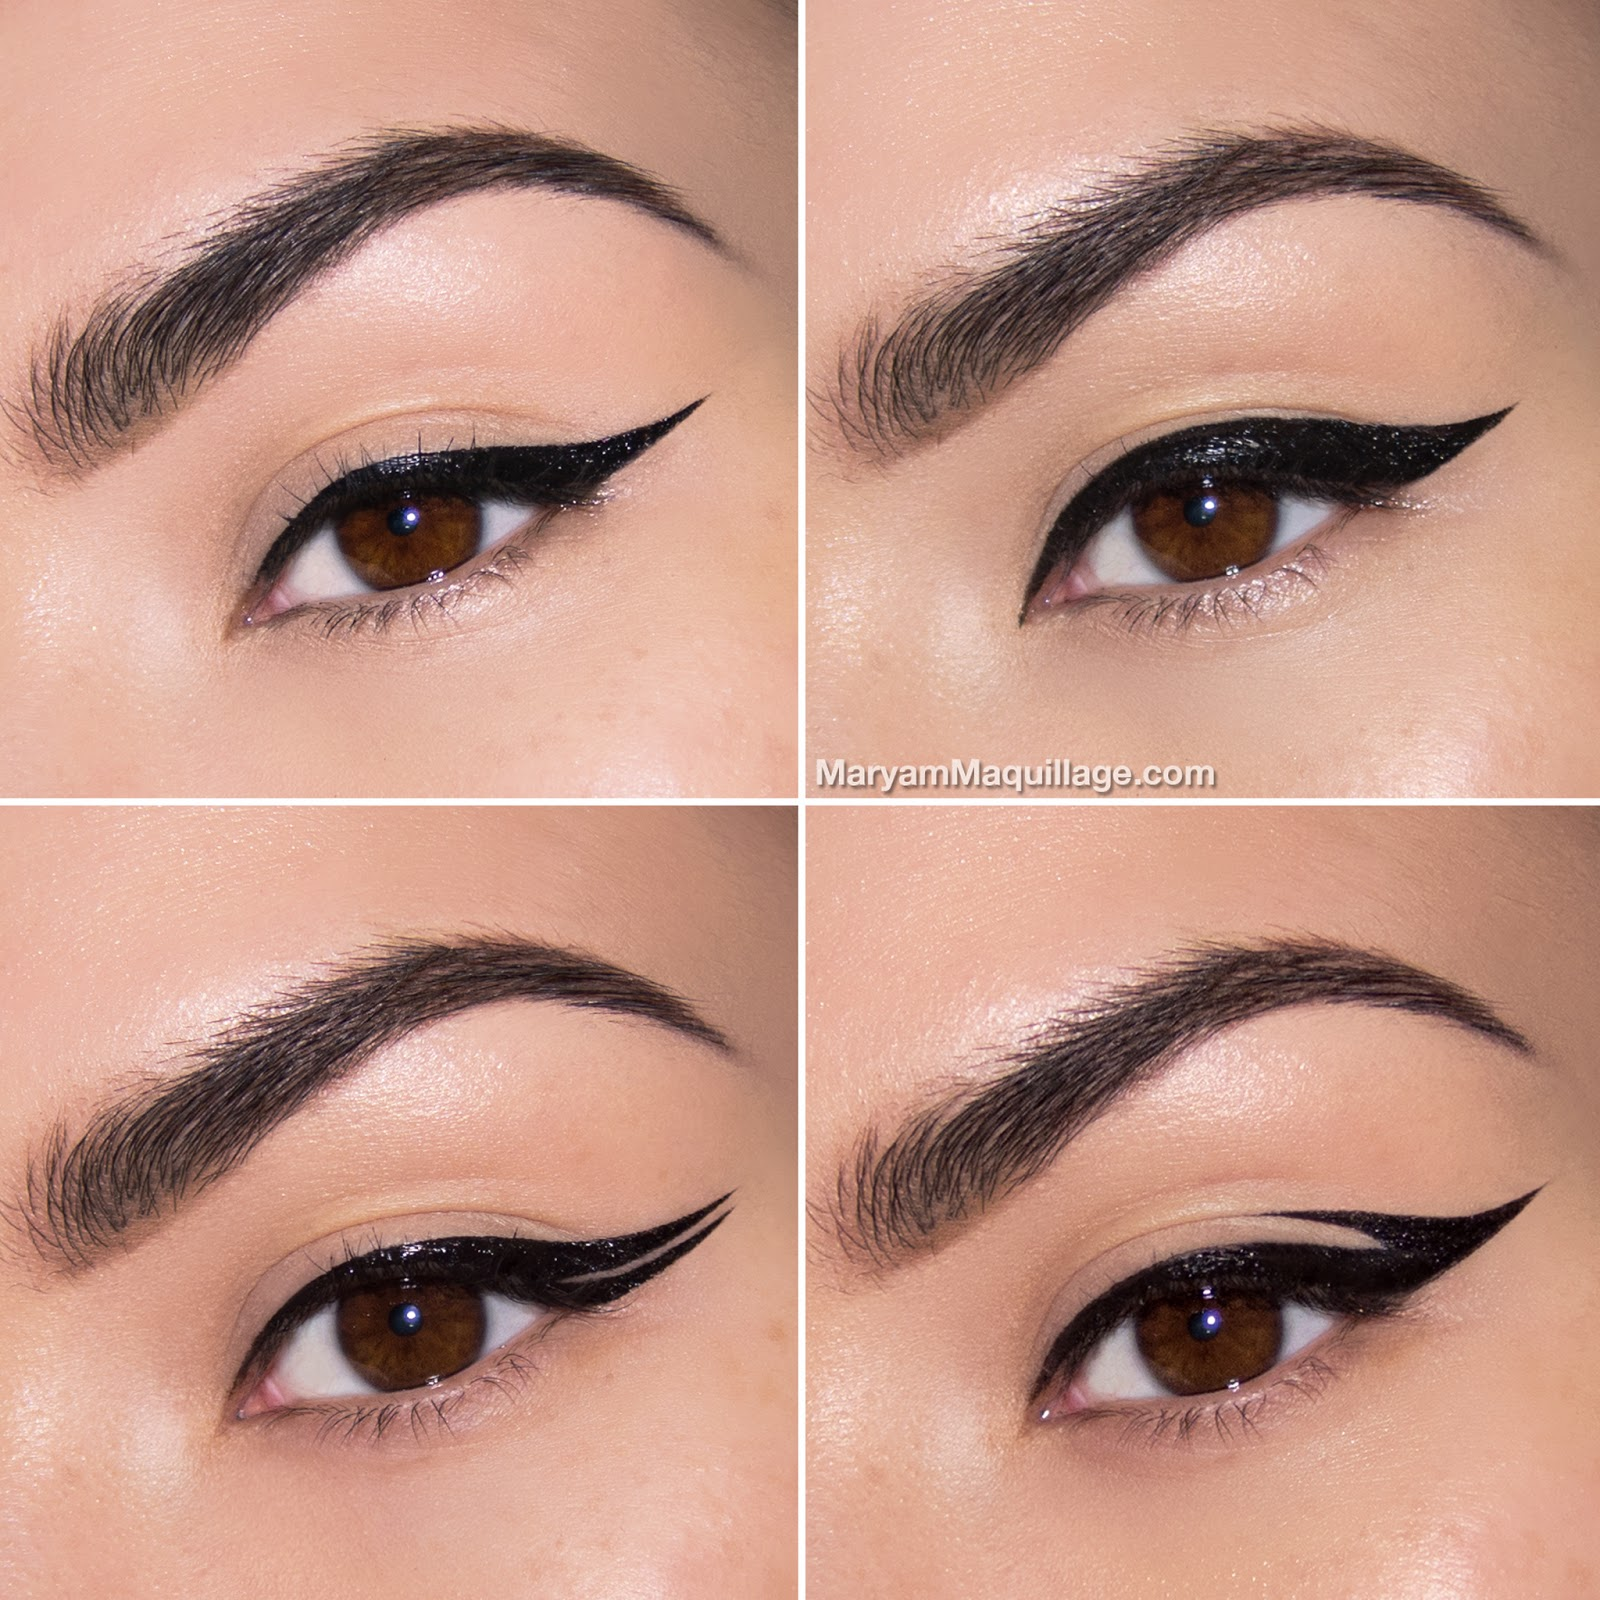 maryam maquillage makeup 101 cat eye brows. Black Bedroom Furniture Sets. Home Design Ideas